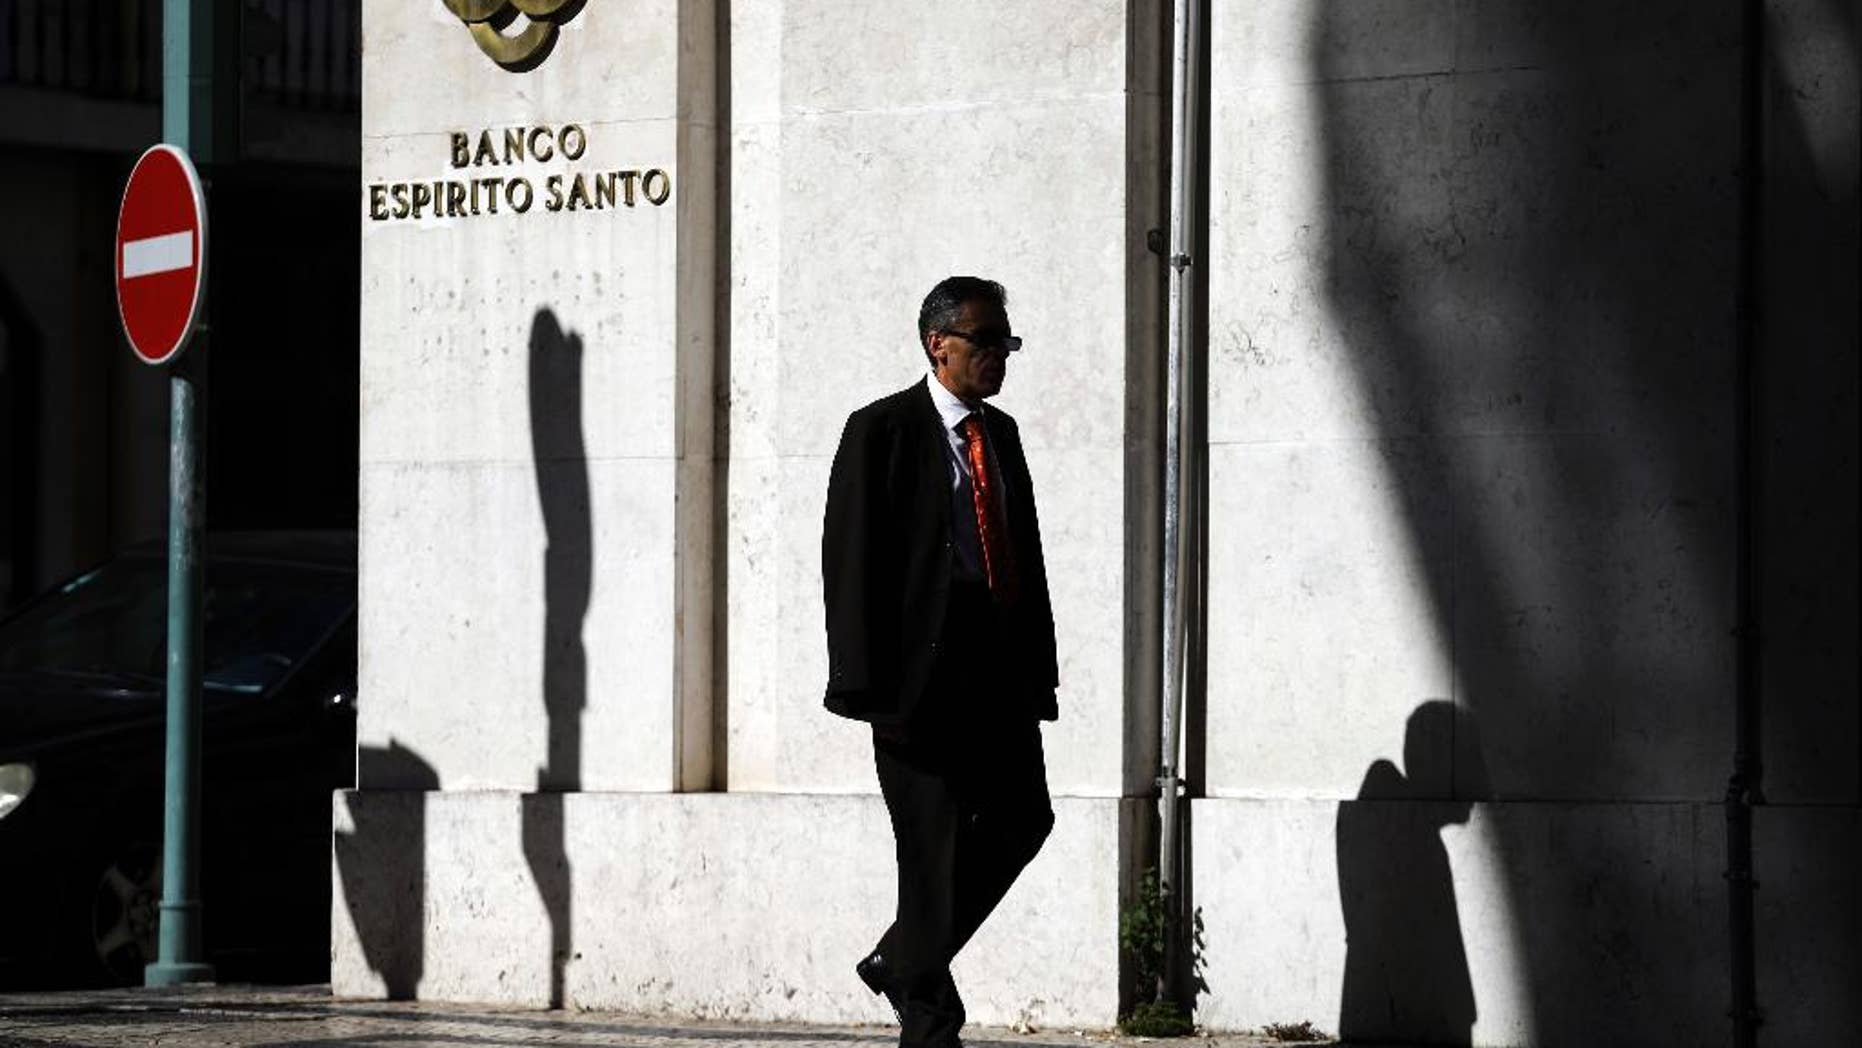 A man walks past a Portuguese bank Banco Espirito Santo's building in downtown Lisbon, Friday July 11, 2014. Senior Portuguese officials gave assurances Friday about the soundness of Portugal's biggest bank, seeking to defuse tension after world markets went into a spin over fears that Banco Espirito Santo's troubles could reignite Europe's financial difficulties. (AP Photo/Francisco Seco)